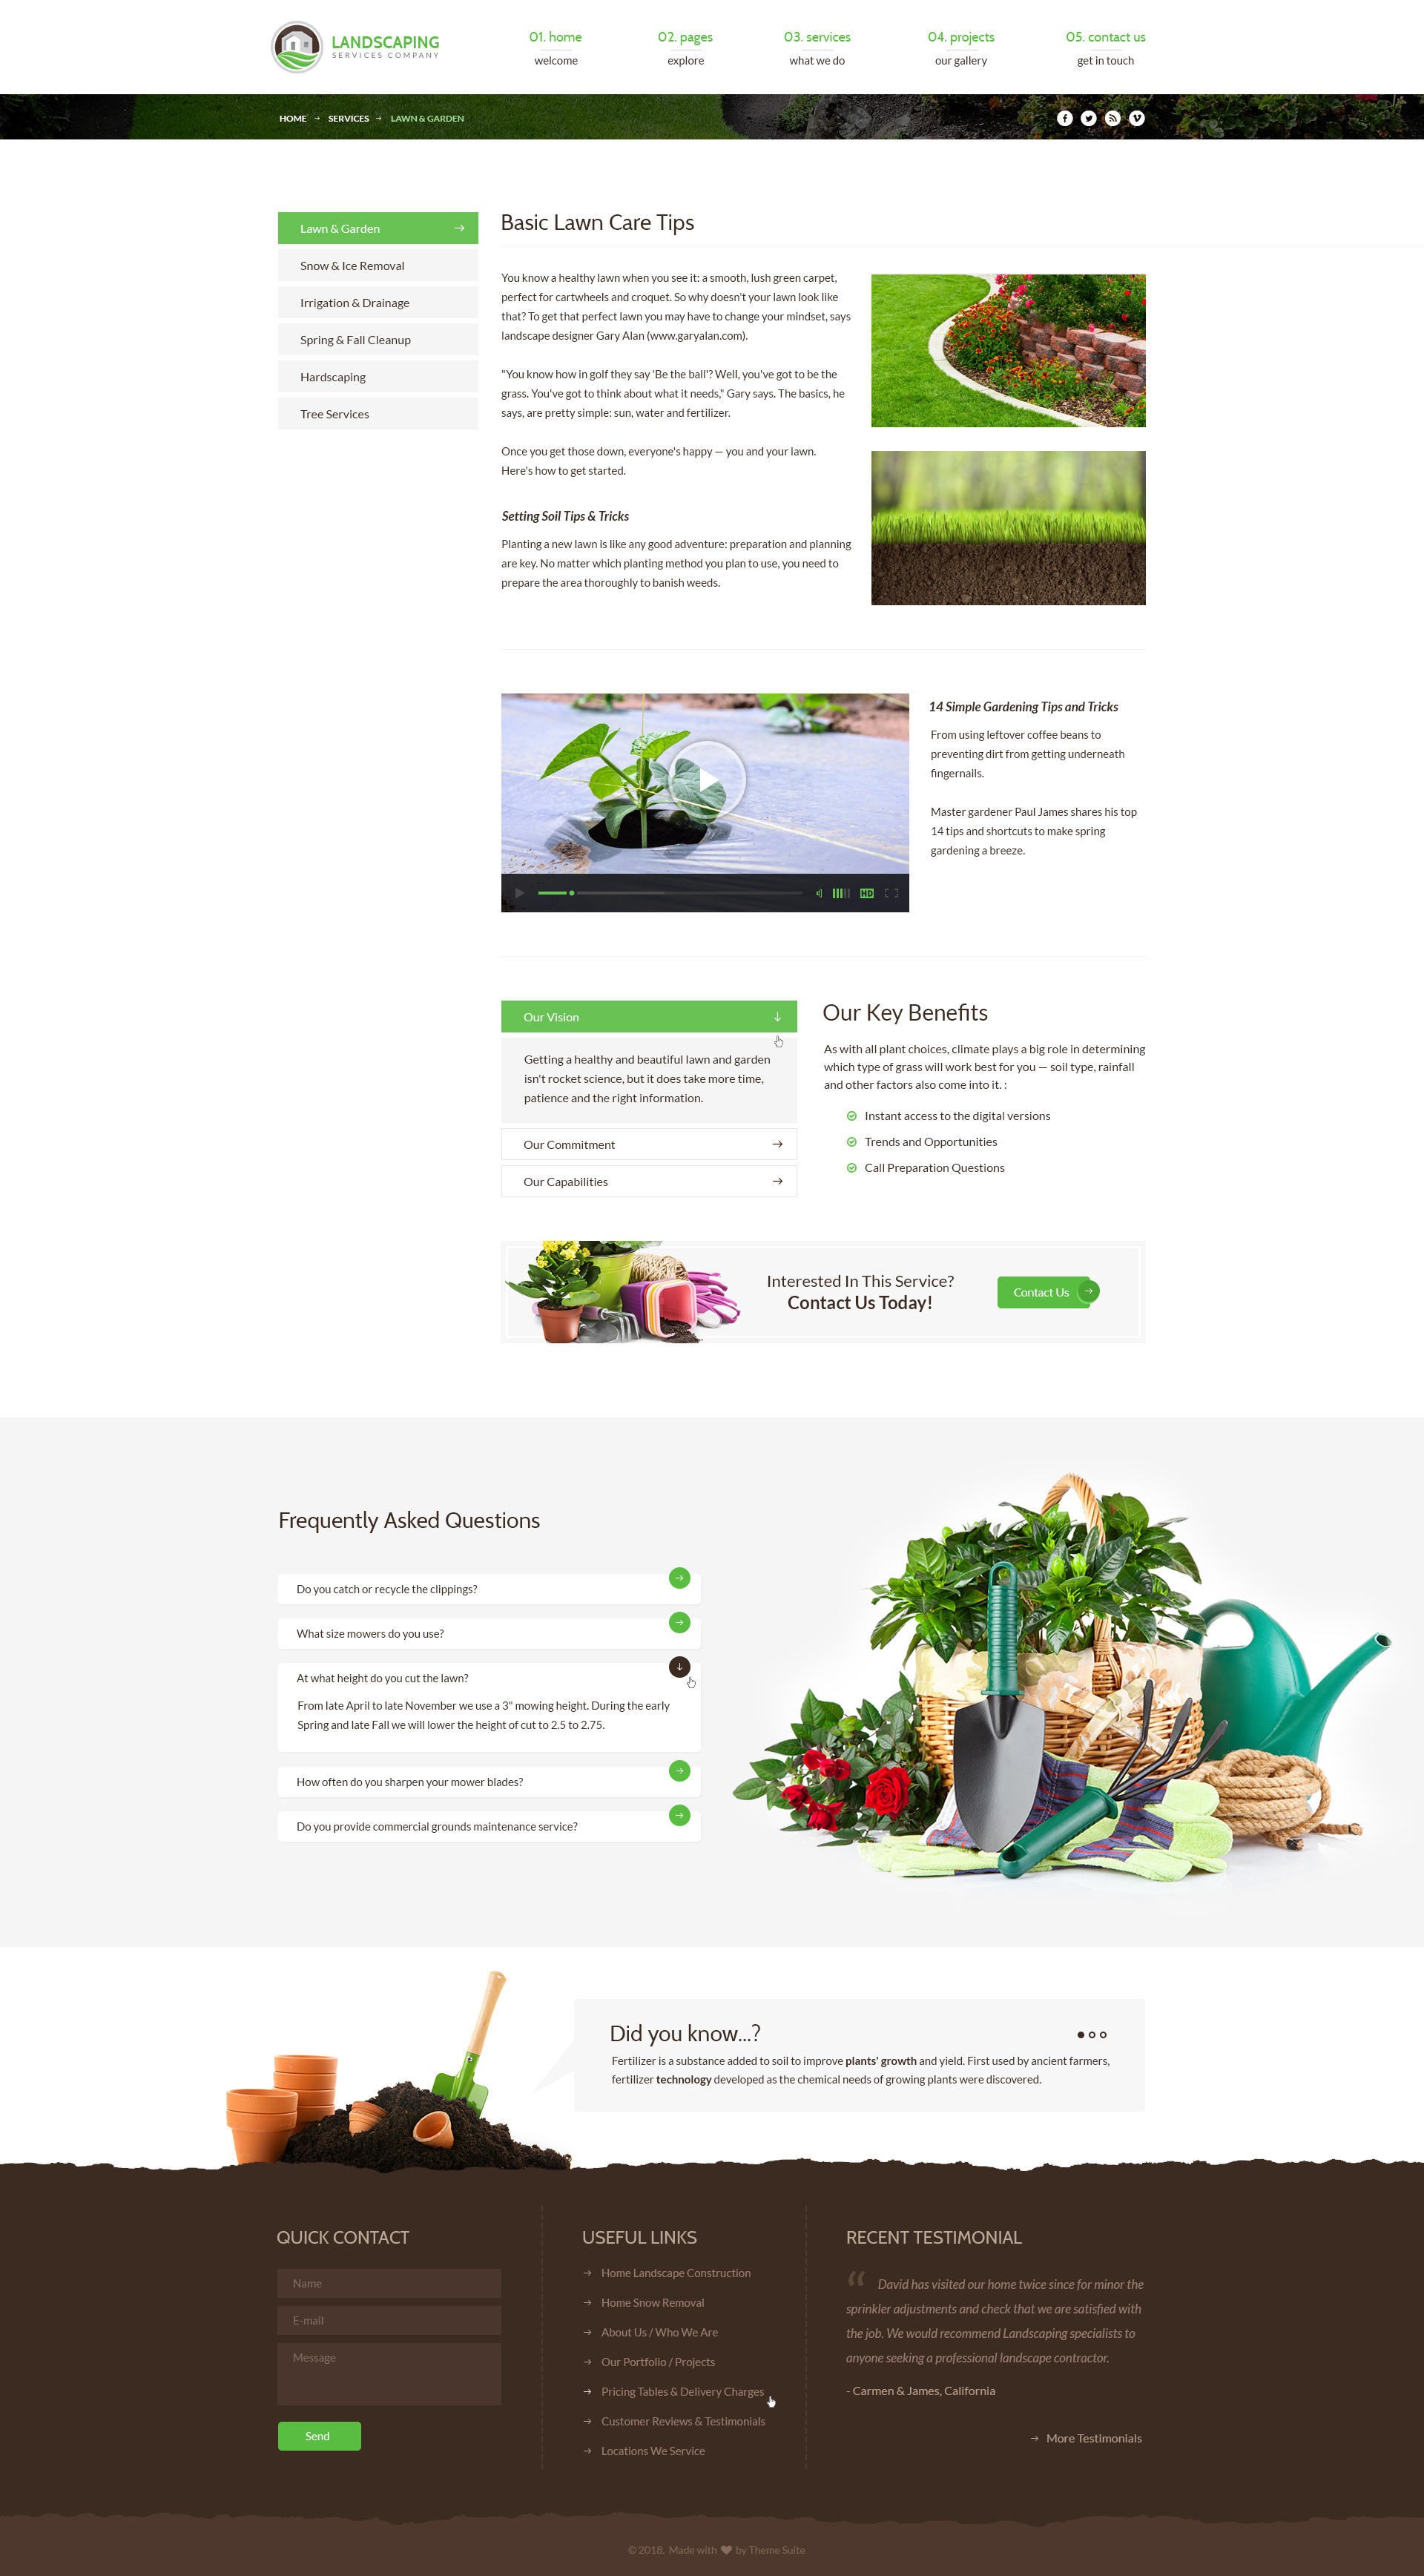 Landscaping Lawn Garden Landscape Construction Snow Removal - Snow plowing flyer template